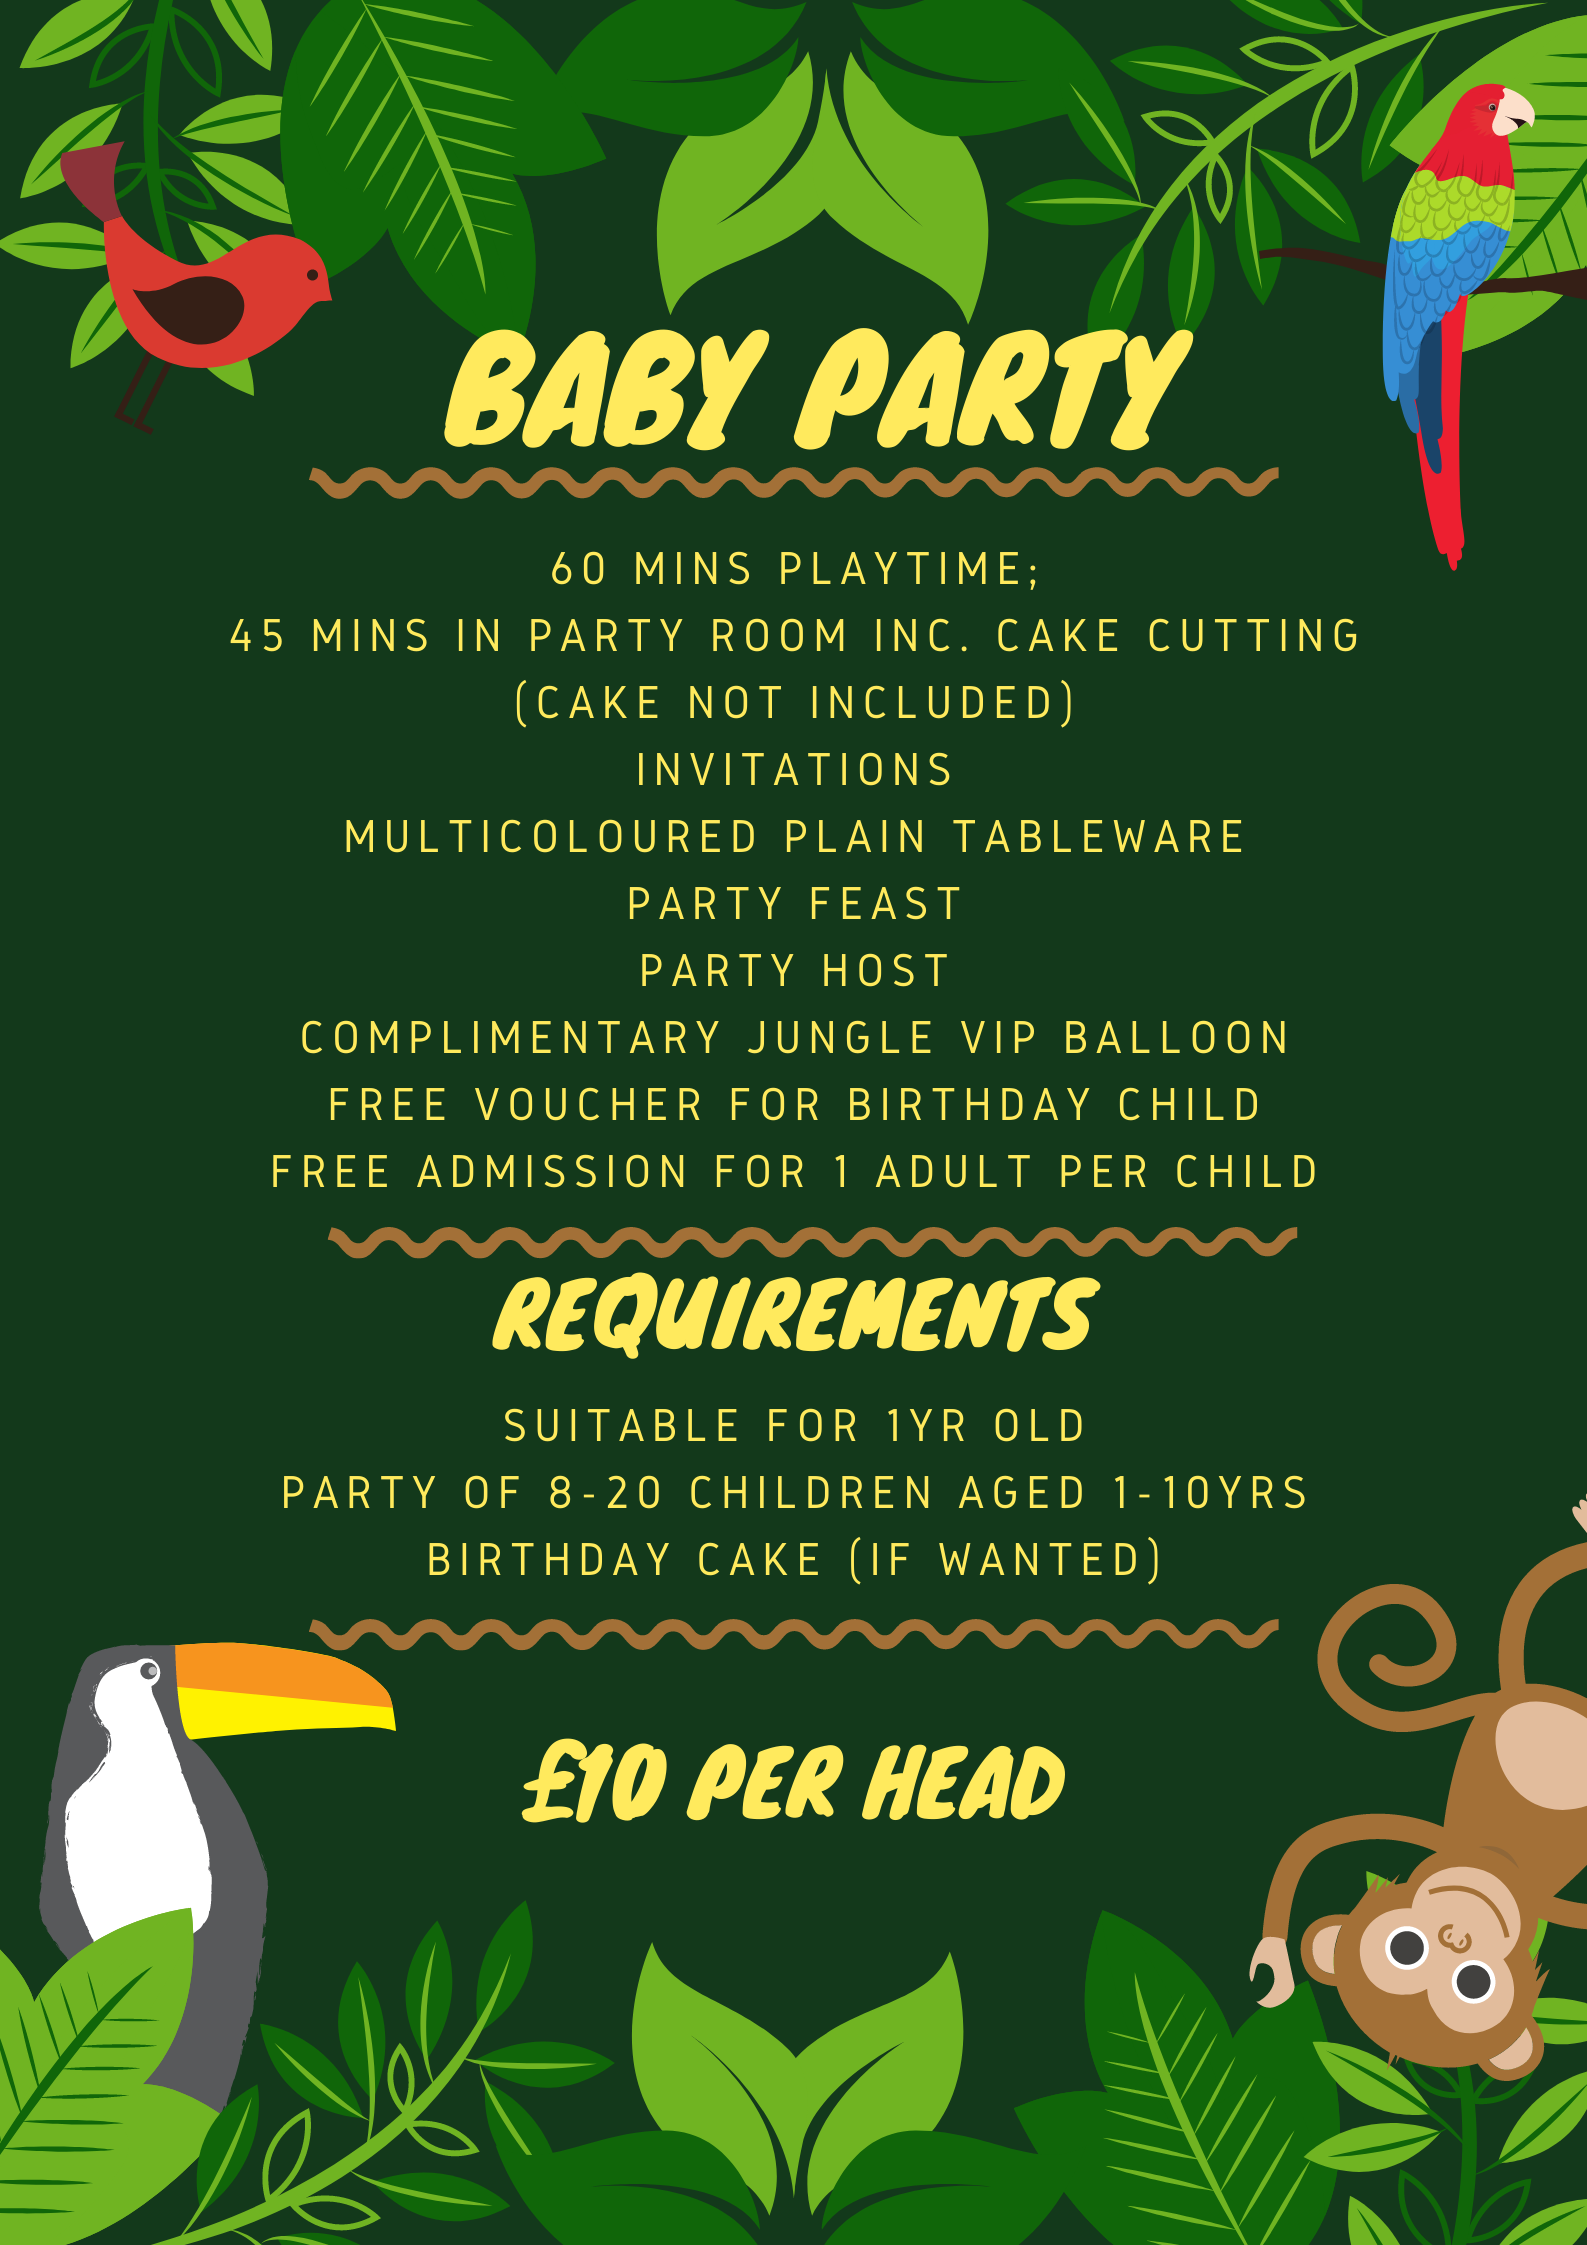 Baby Party List